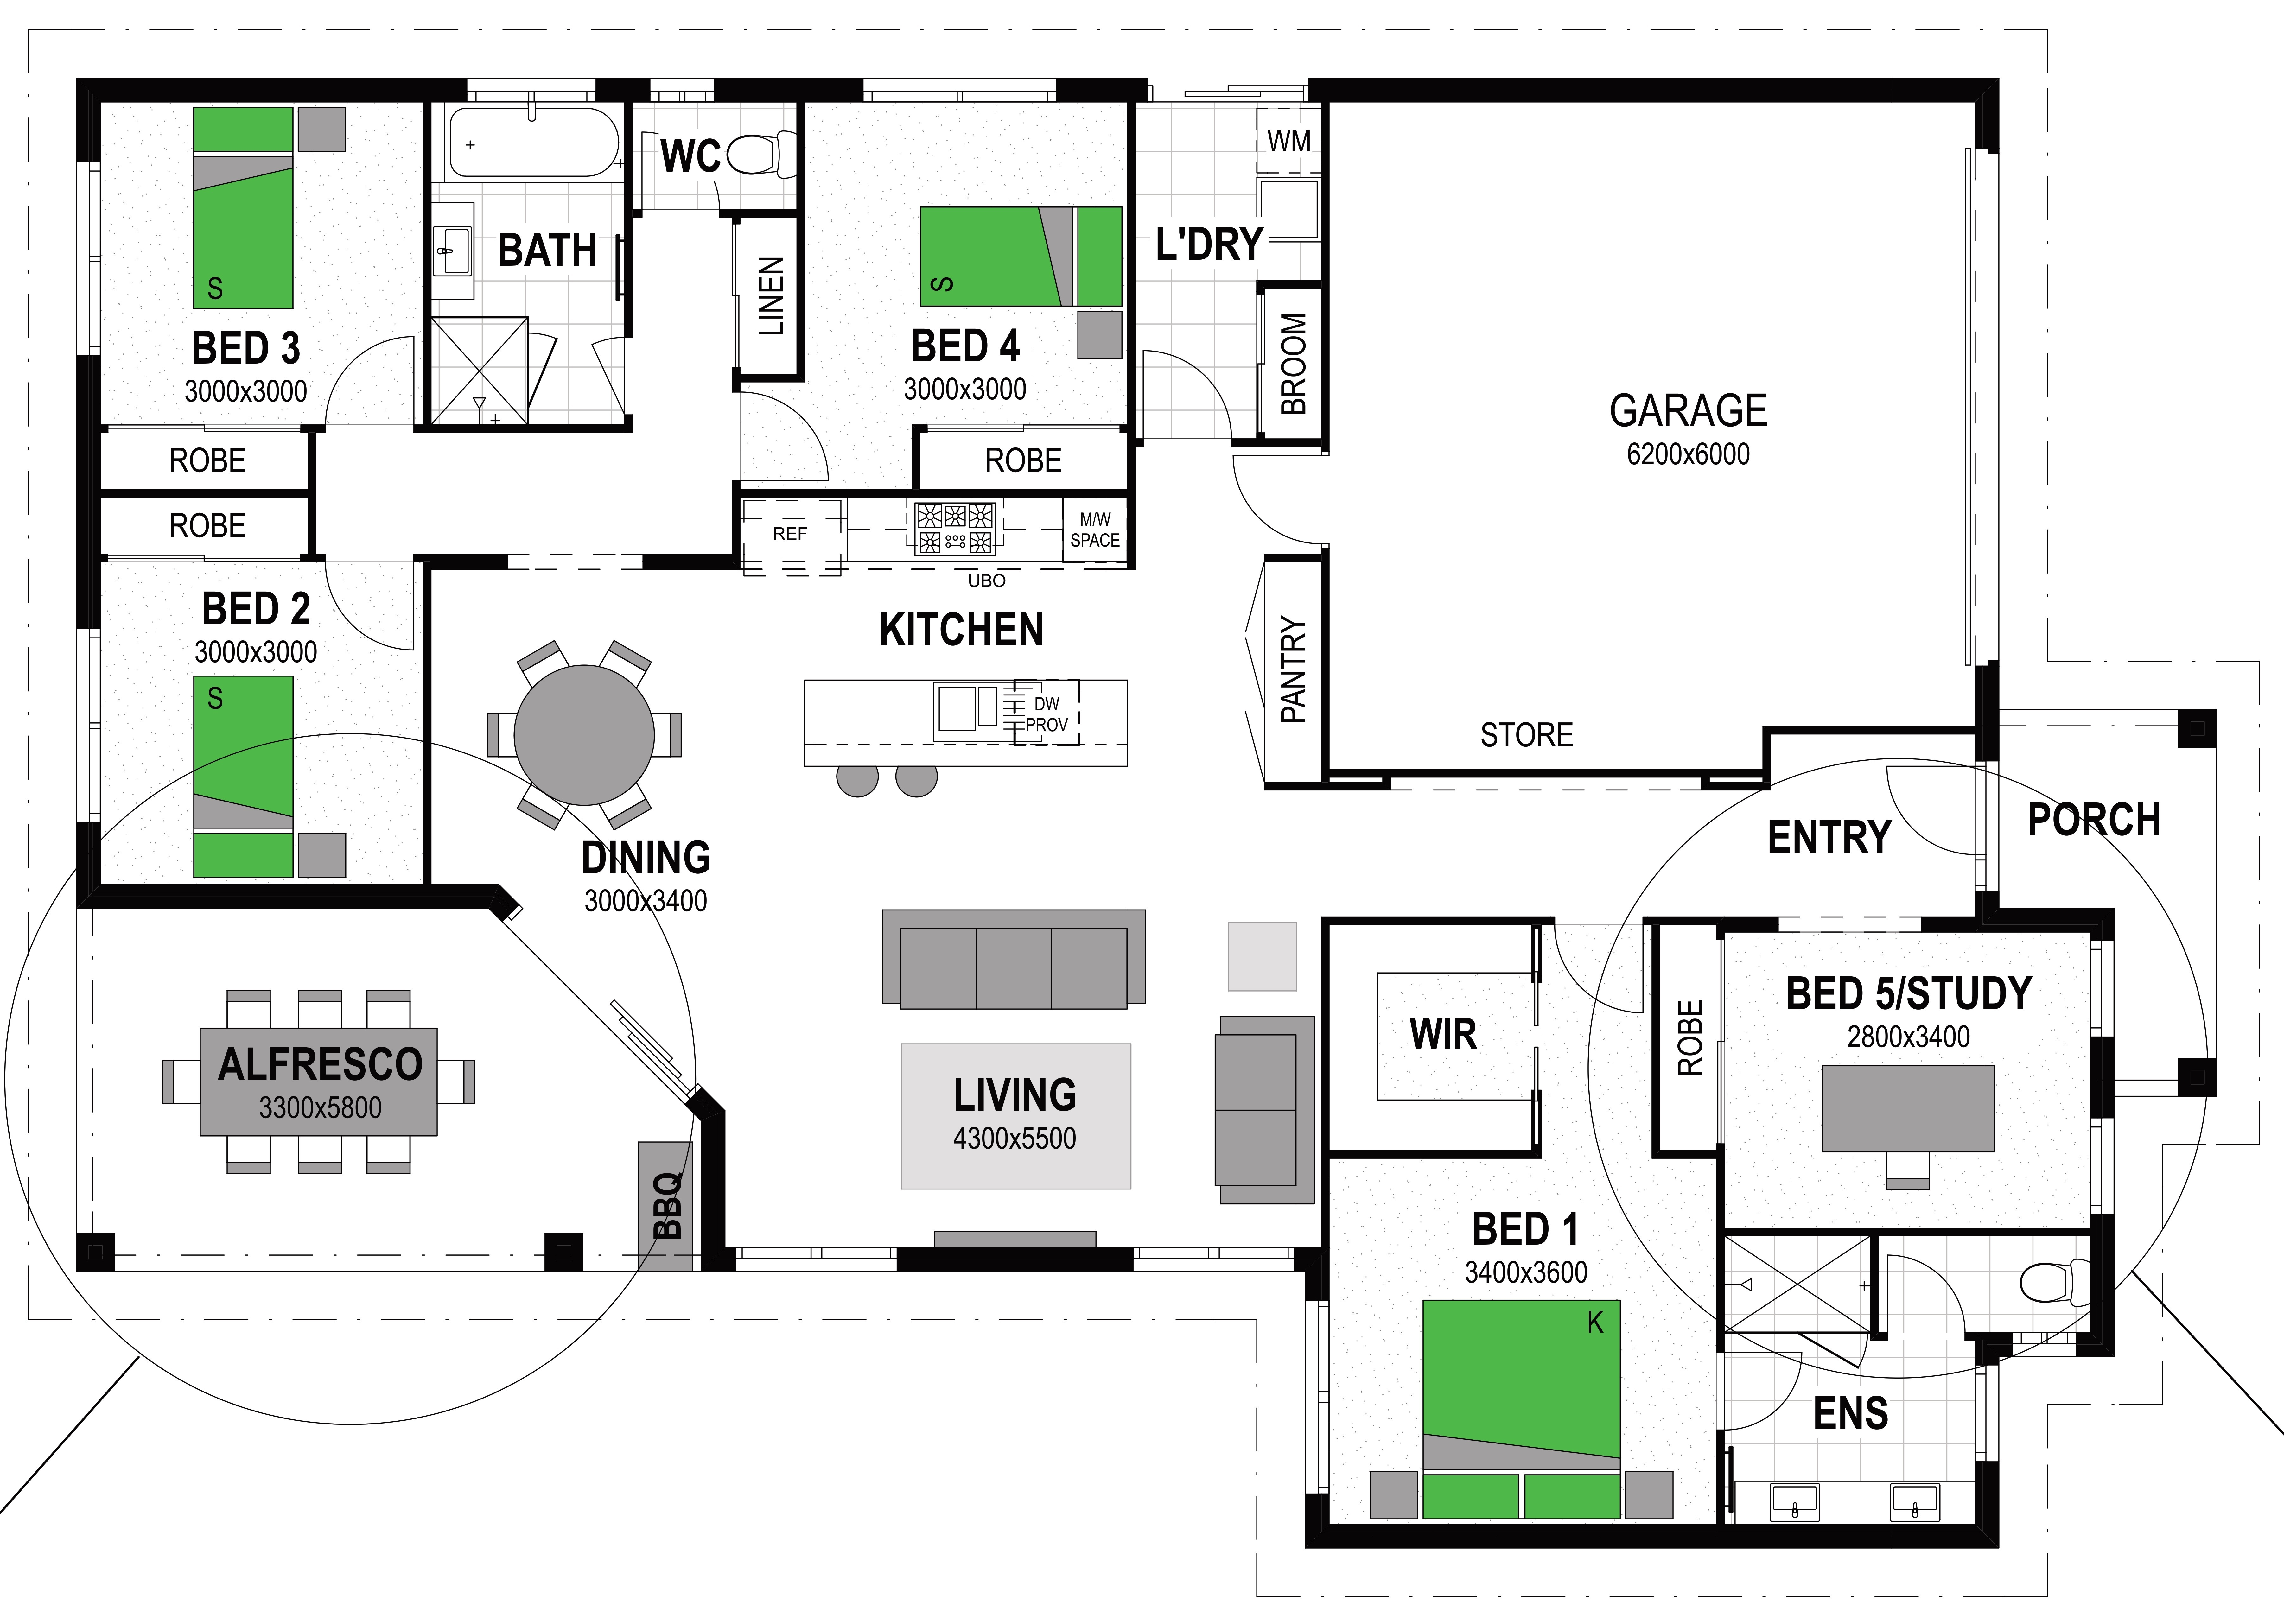 LOT 55 ROSEANNA COURT BALD HILLS Floorplan